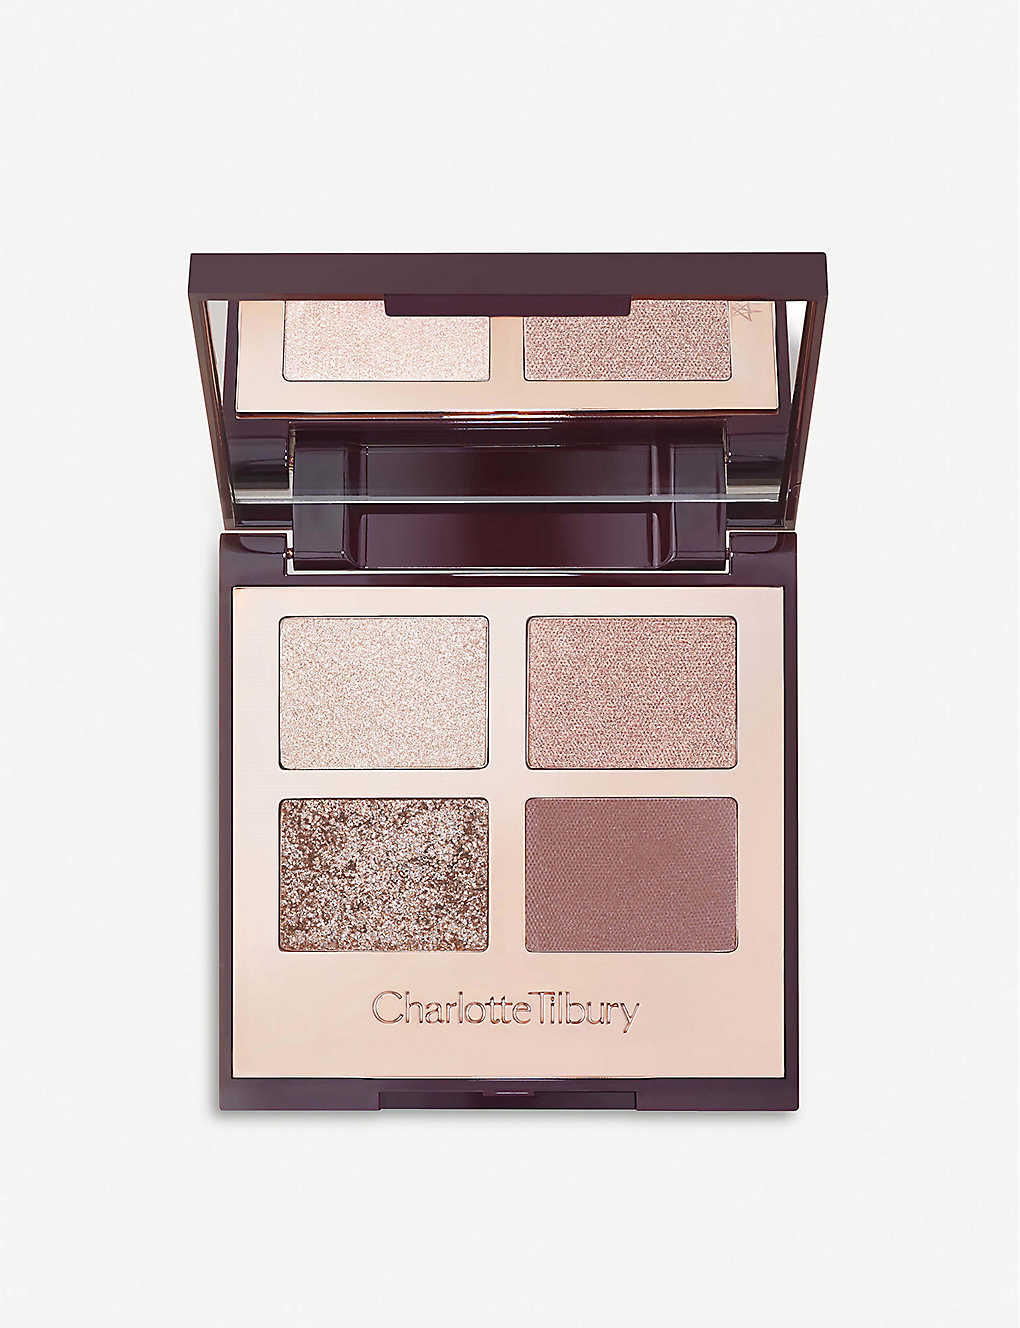 CHARLOTTE TILBURY: Bigger Brighter Eyes In Transform-Eyes